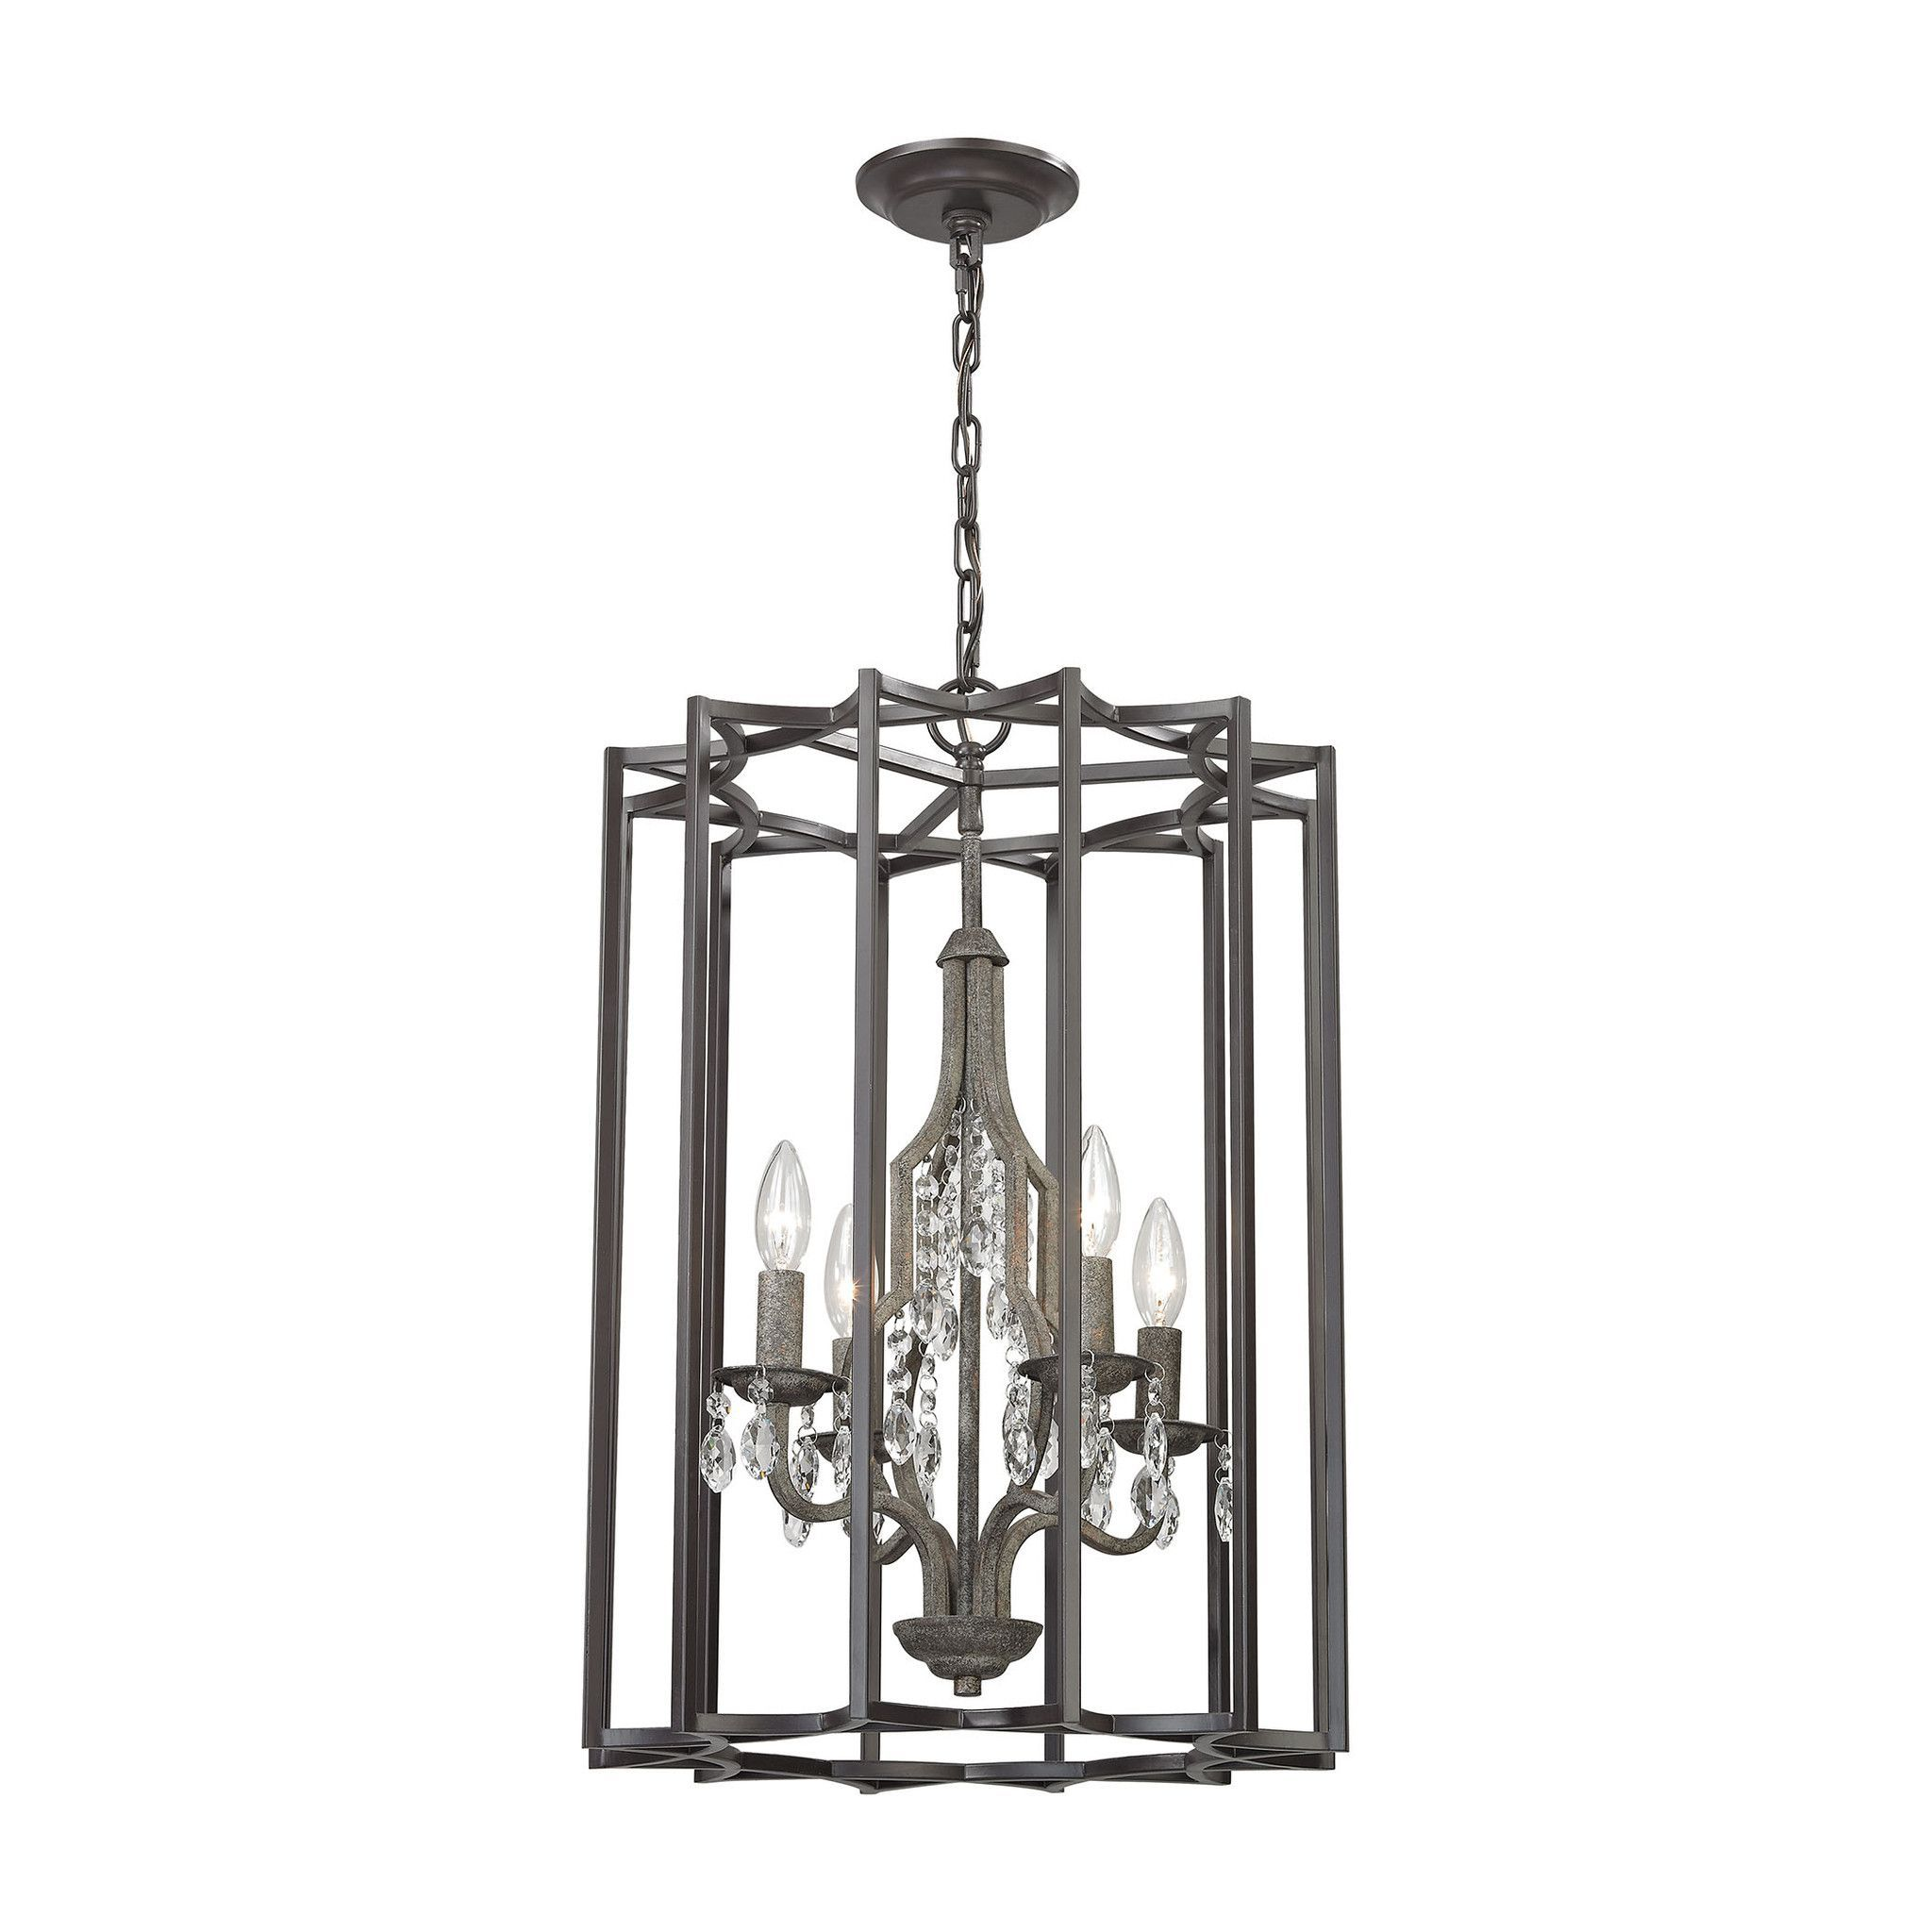 ELK Lighting 32151/4 Belgique Collection Oil Rubbed Bronze,Malted Rust Finish